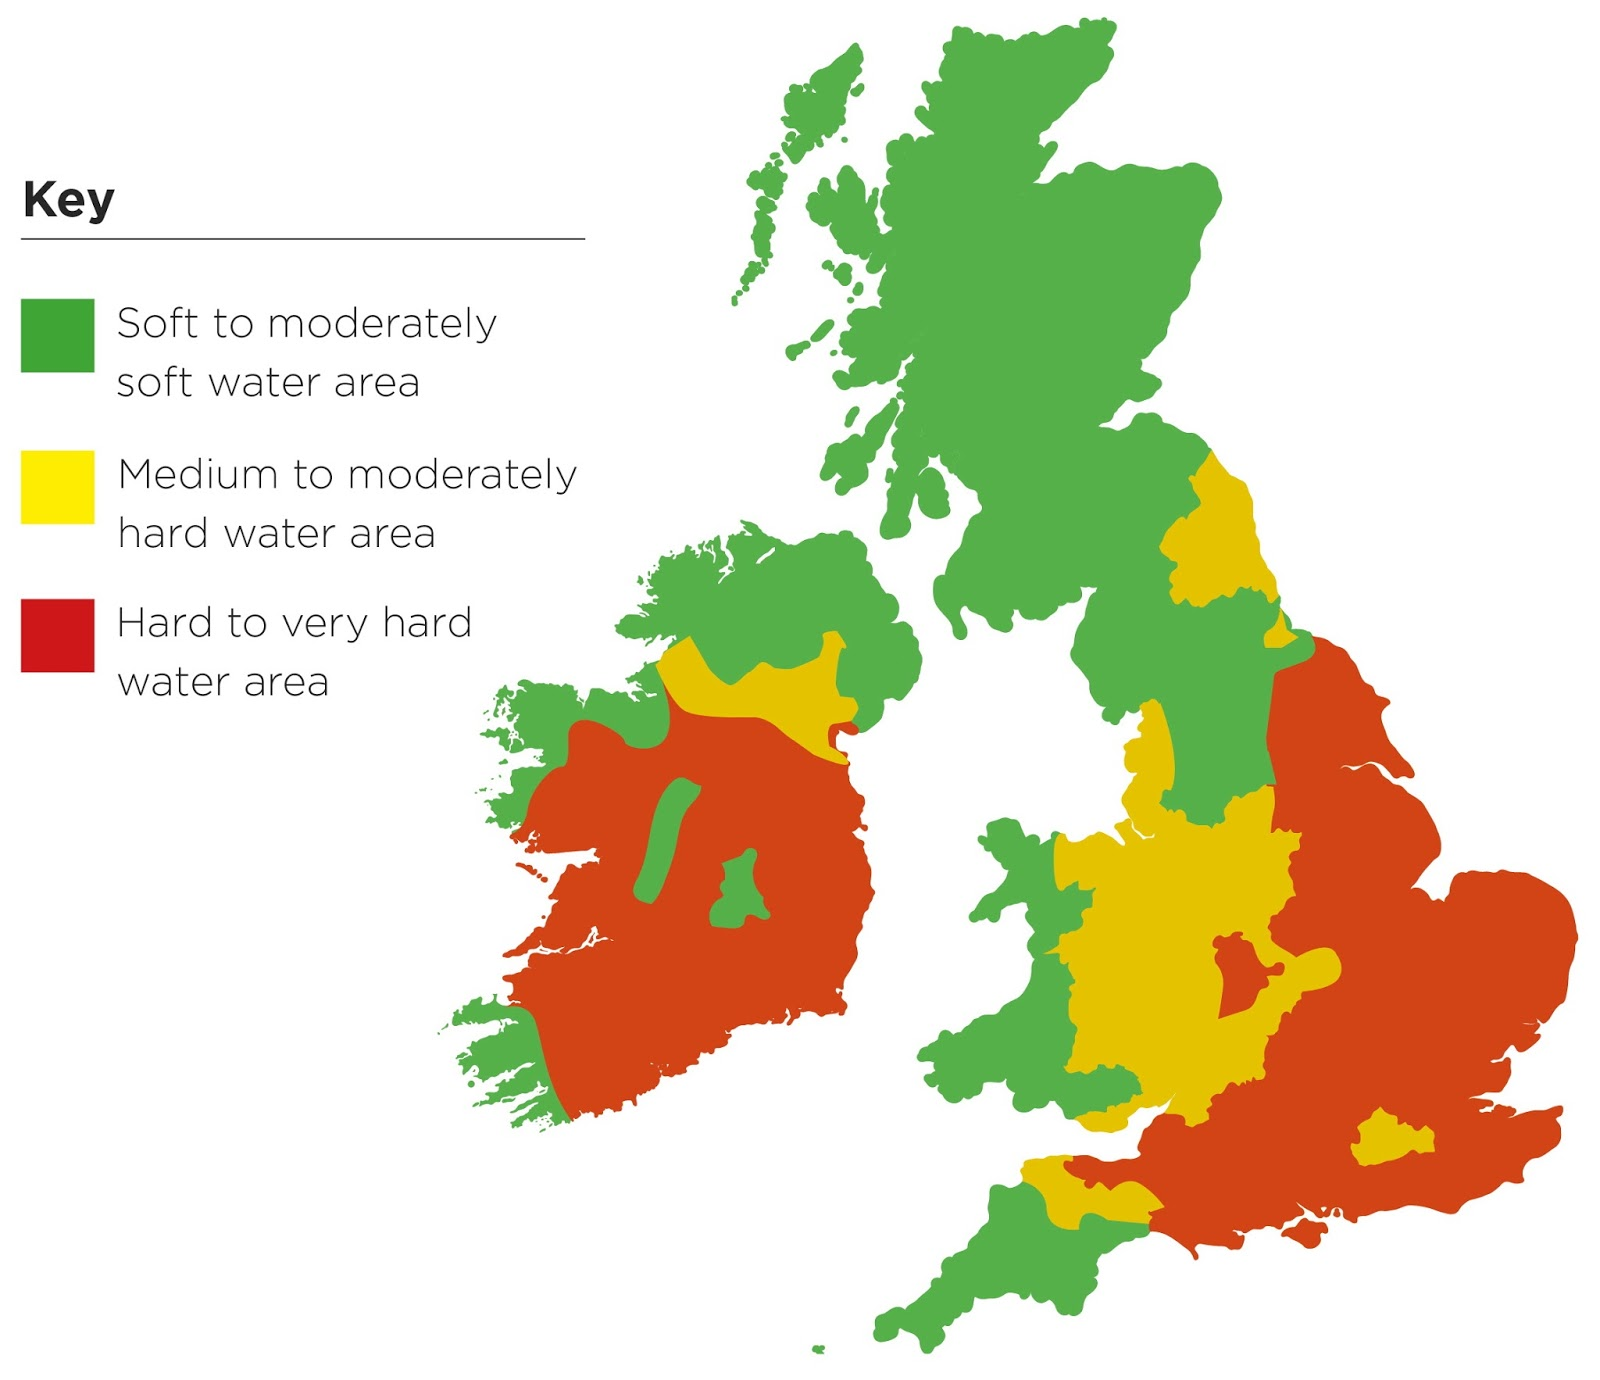 Water hardness in the UK & Ireland